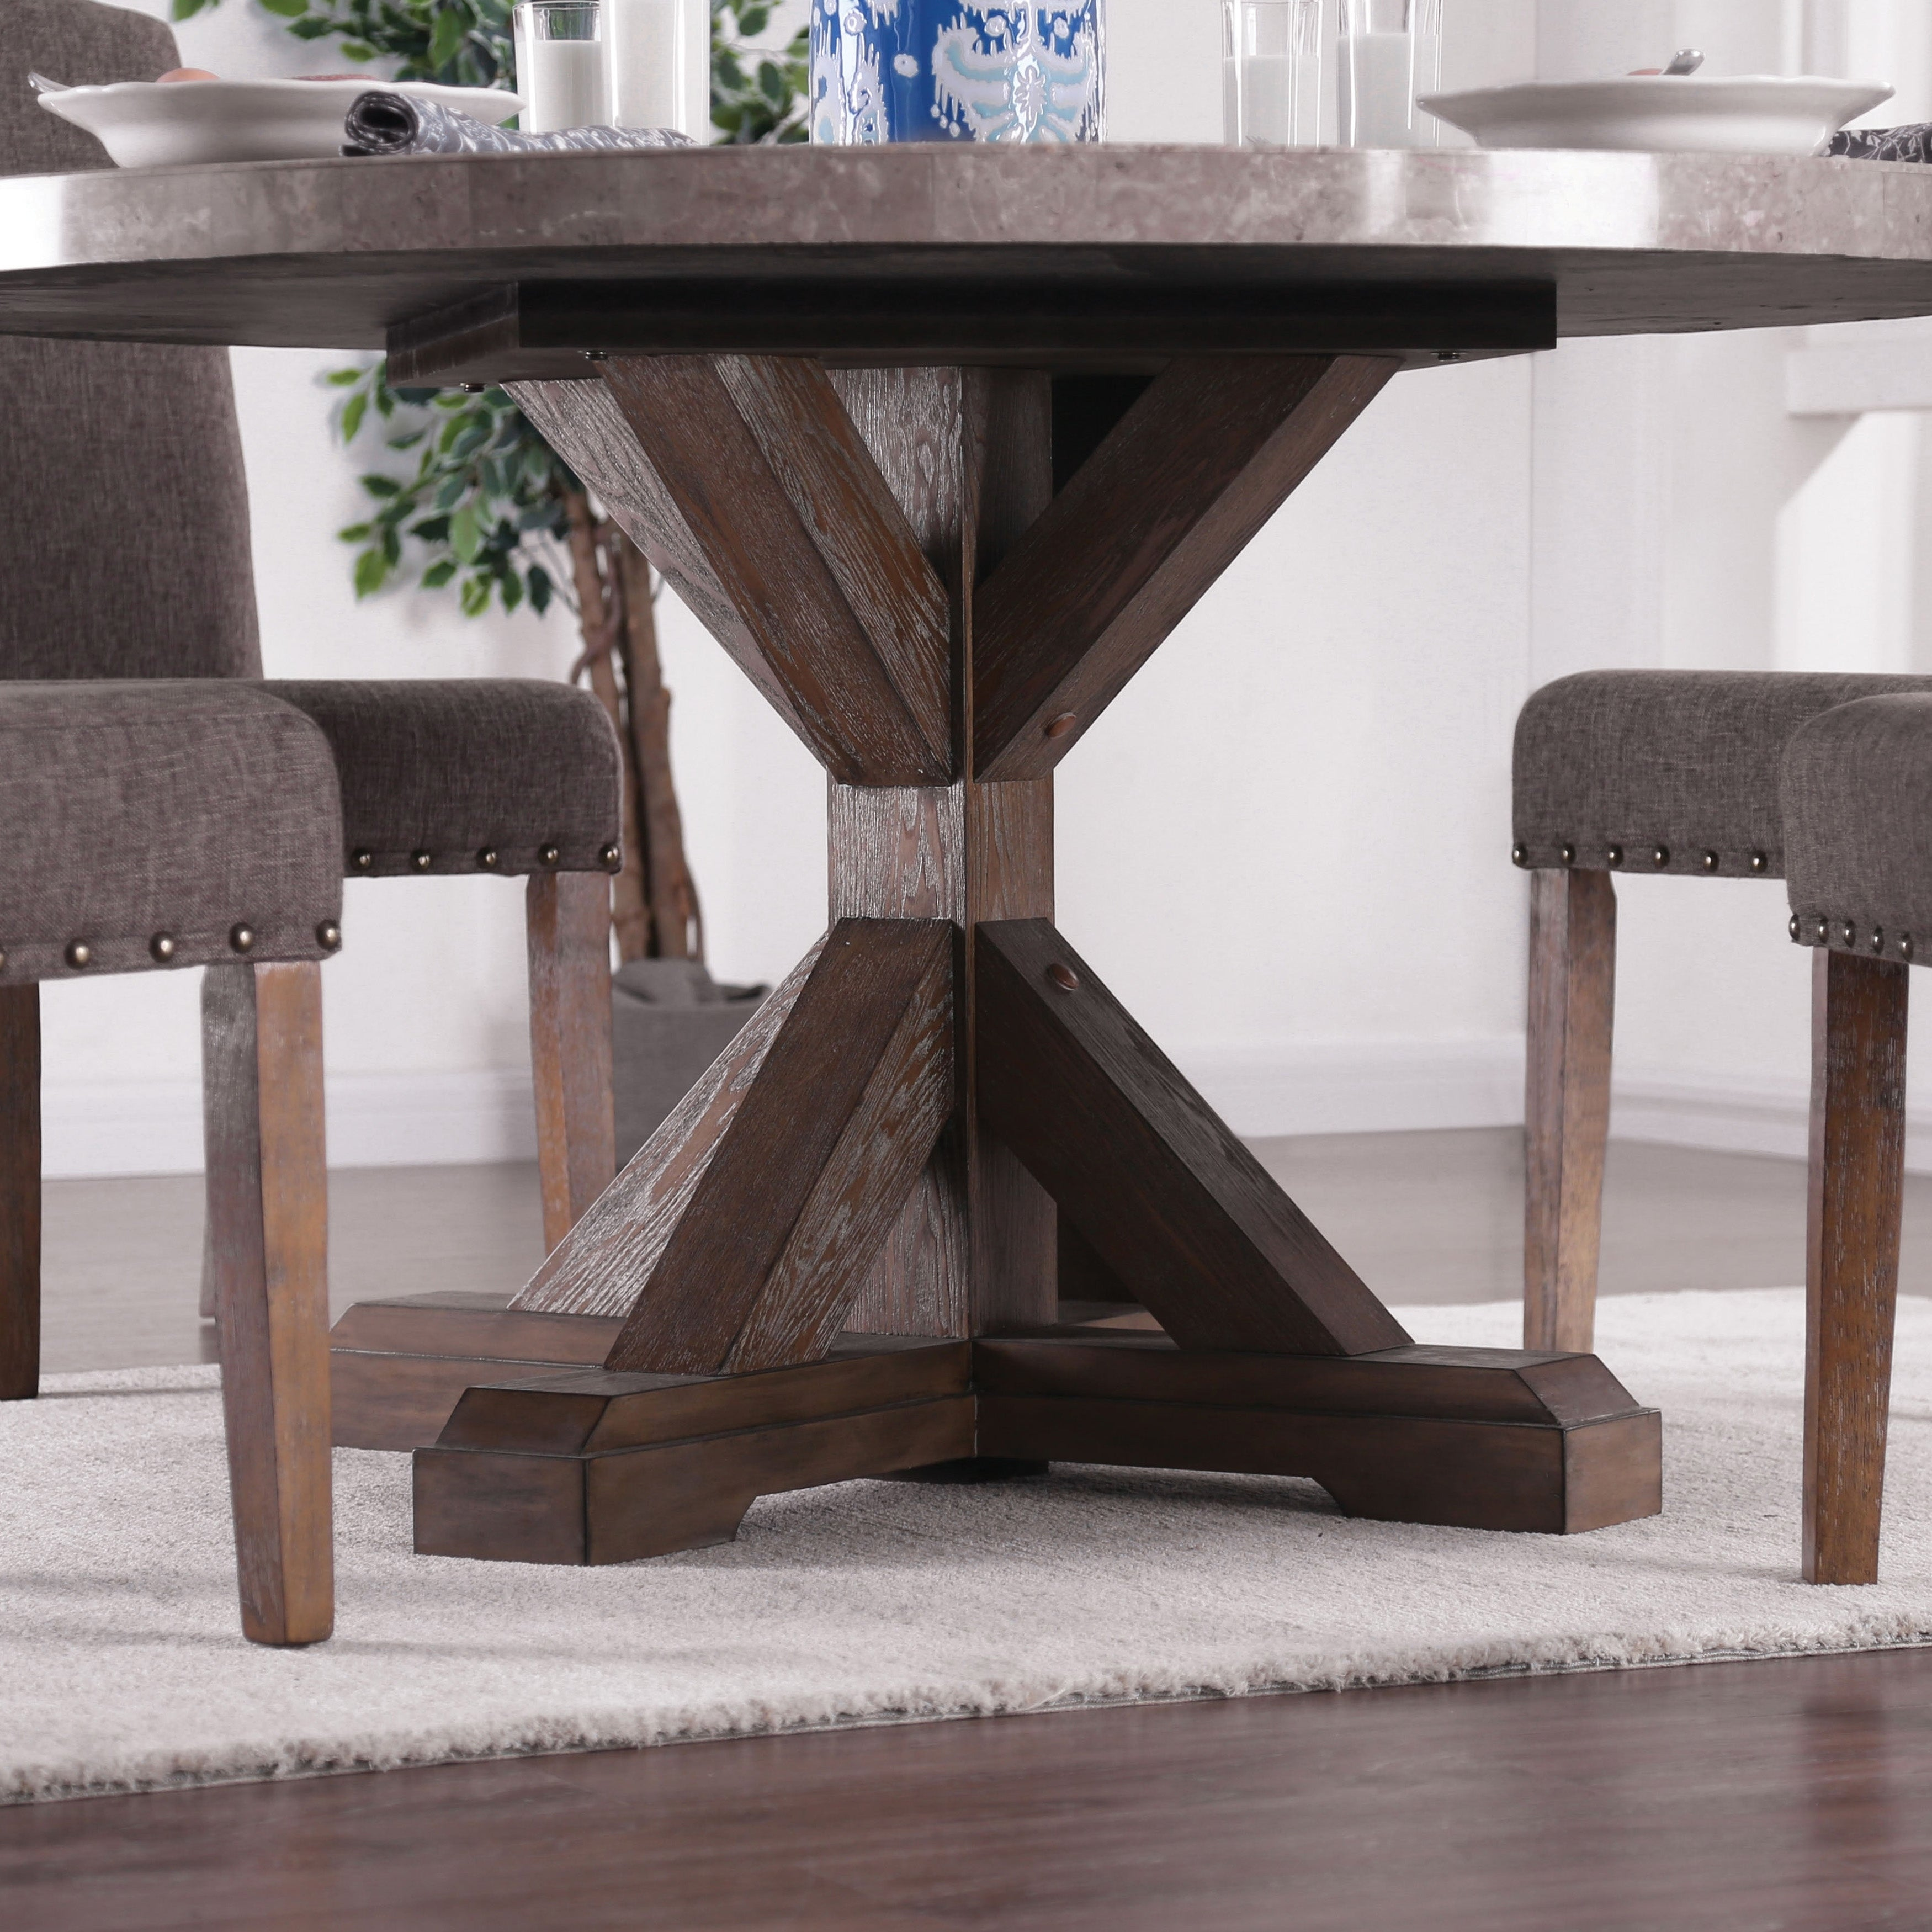 3dc0354ab7094 Shop Furniture of America Emmiyah Rustic Round Genuine Marble 54-inch  Dining Table - Natural - On Sale - Free Shipping Today - Overstock -  23570125